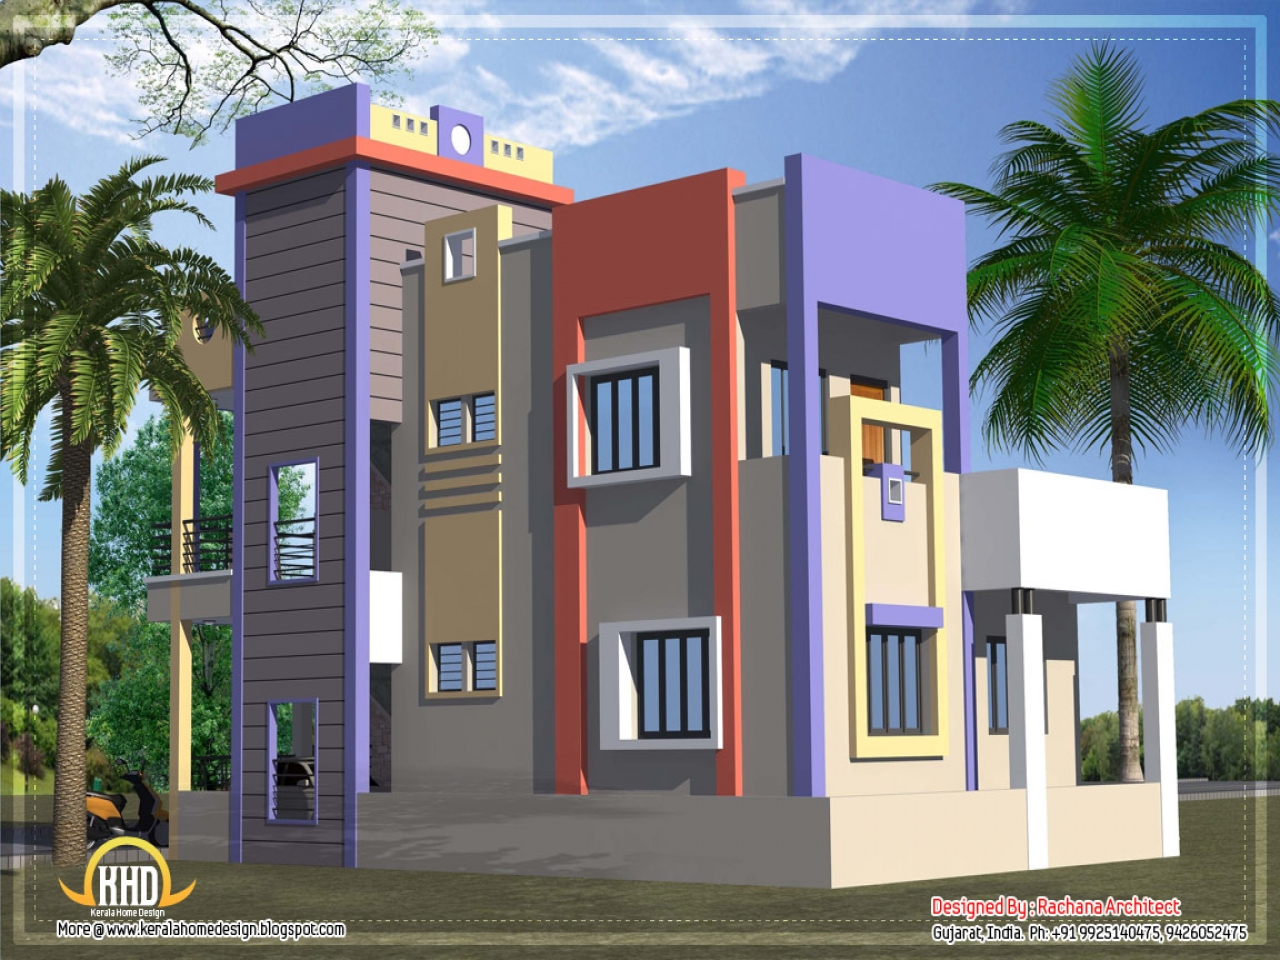 Houses in india house plans designs india good house designs in india for Best indian home design pictures